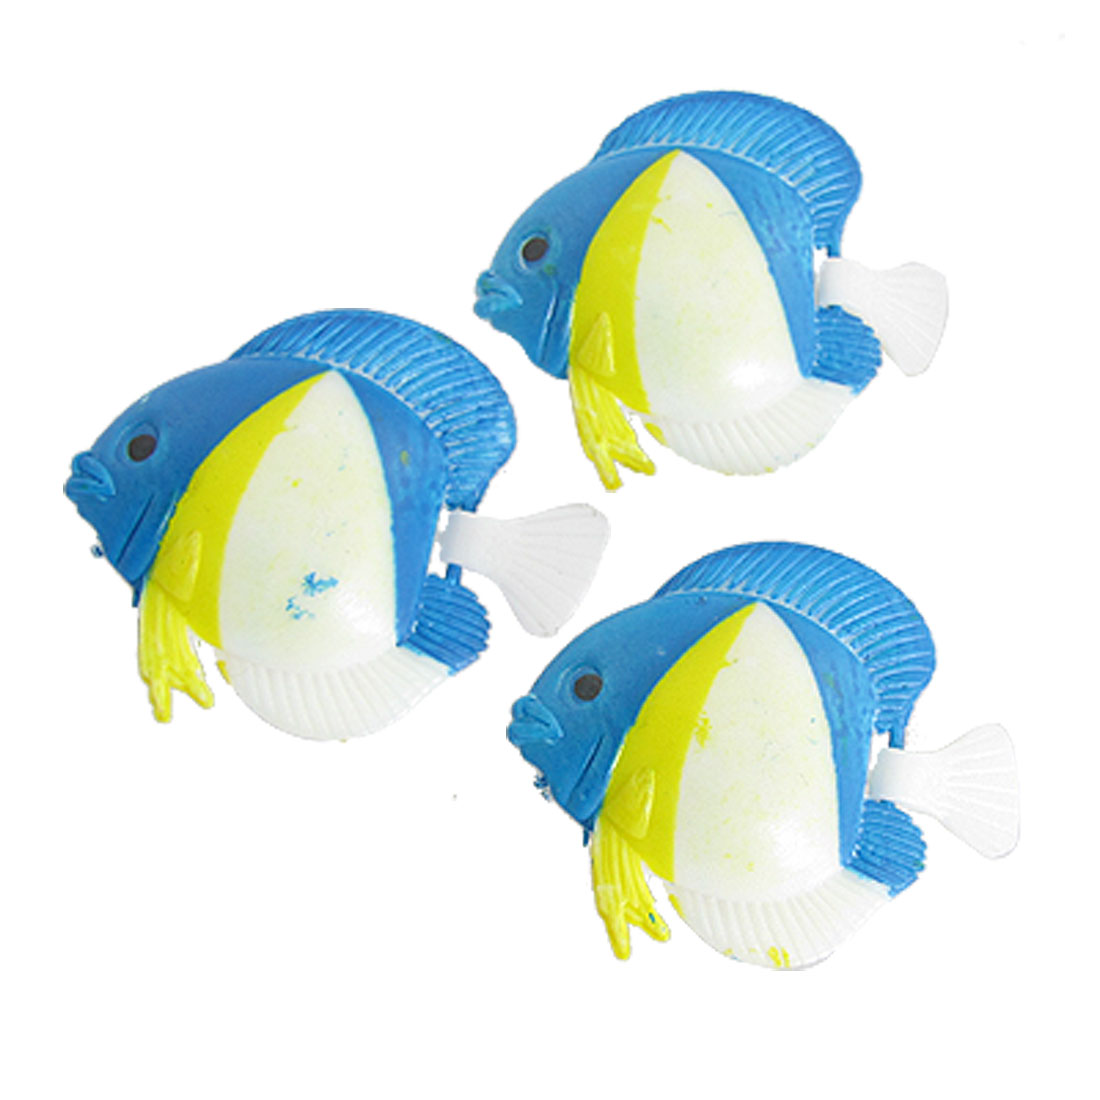 3 Pcs Emulational ional Plastic Floating Fish for Aquarium Fish Tank